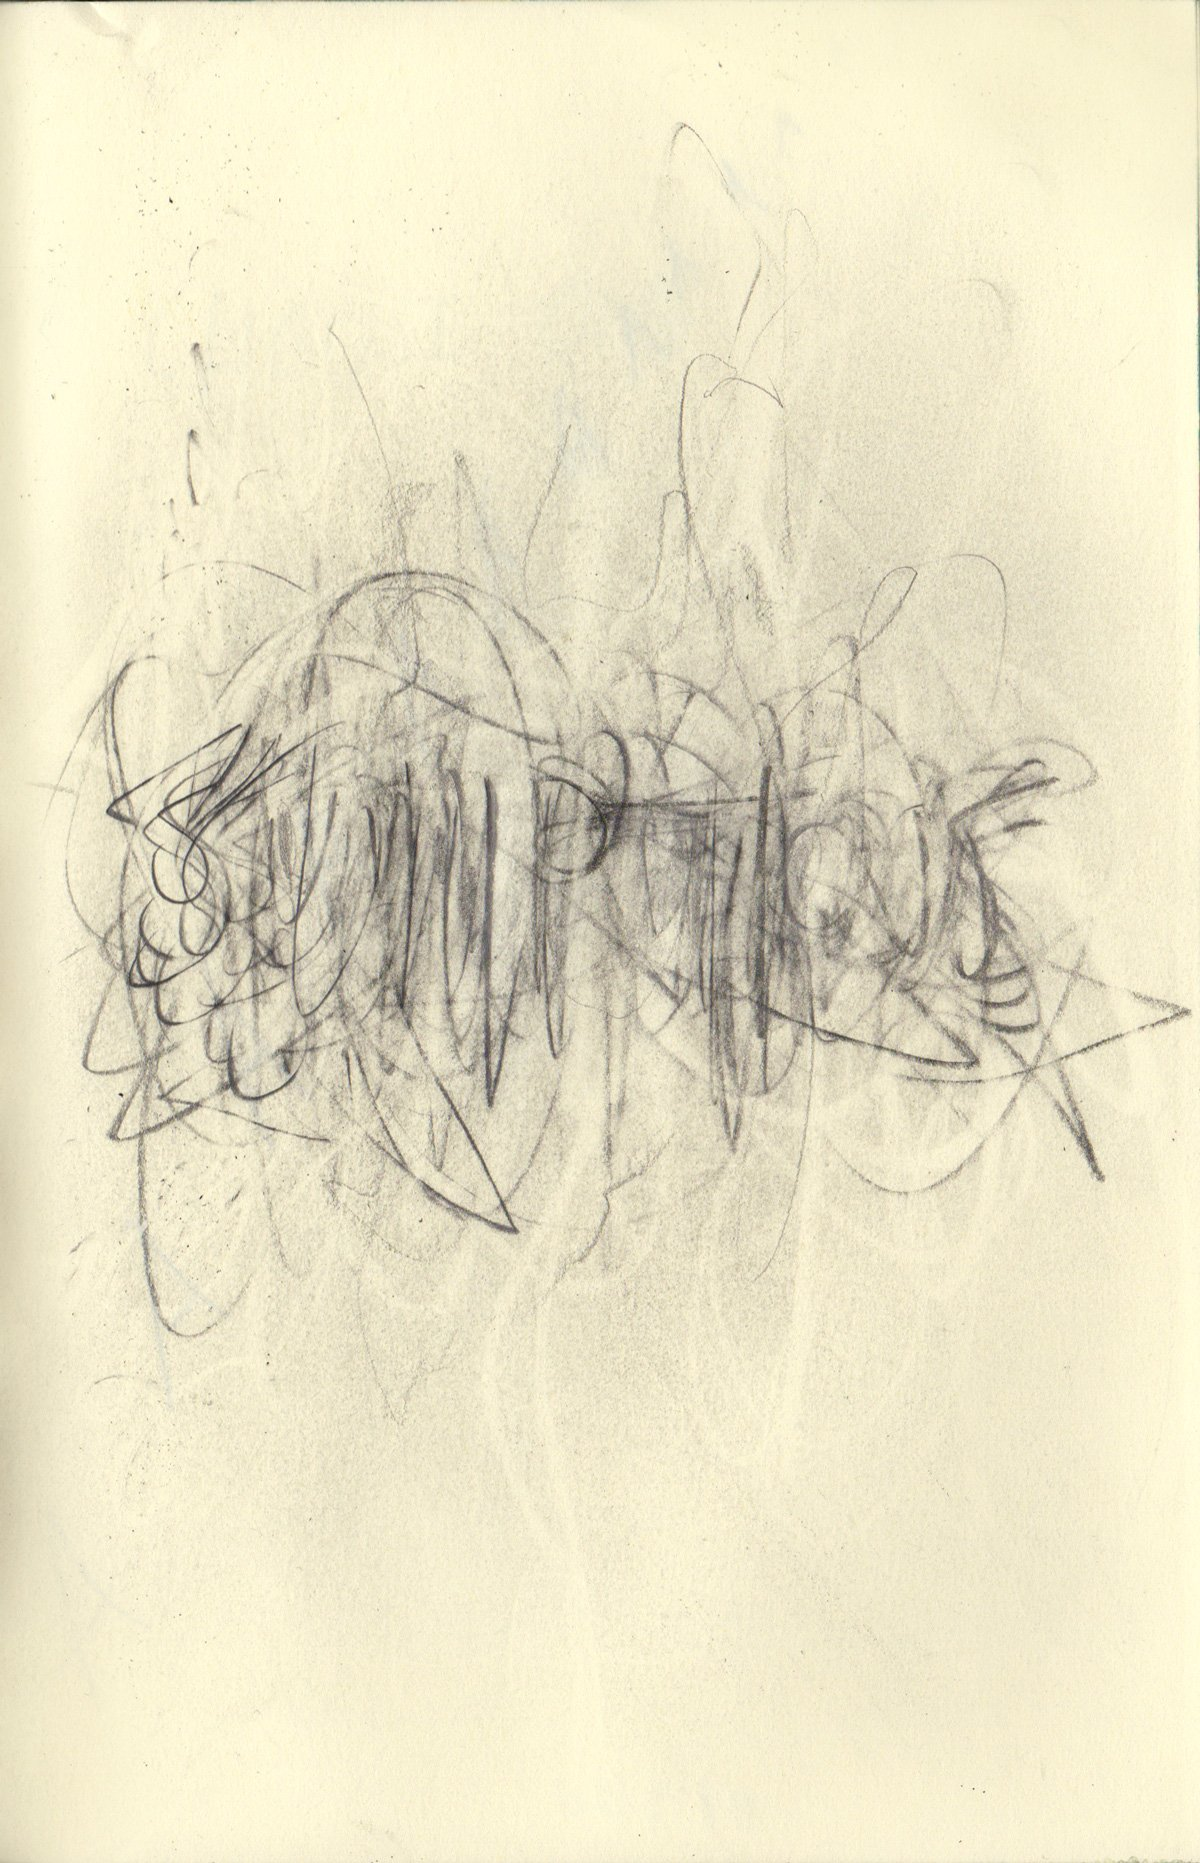 """SUMPTIOUS 5.5 x 8.25"""" 2020 Pencil on Sketchbook Pages"""